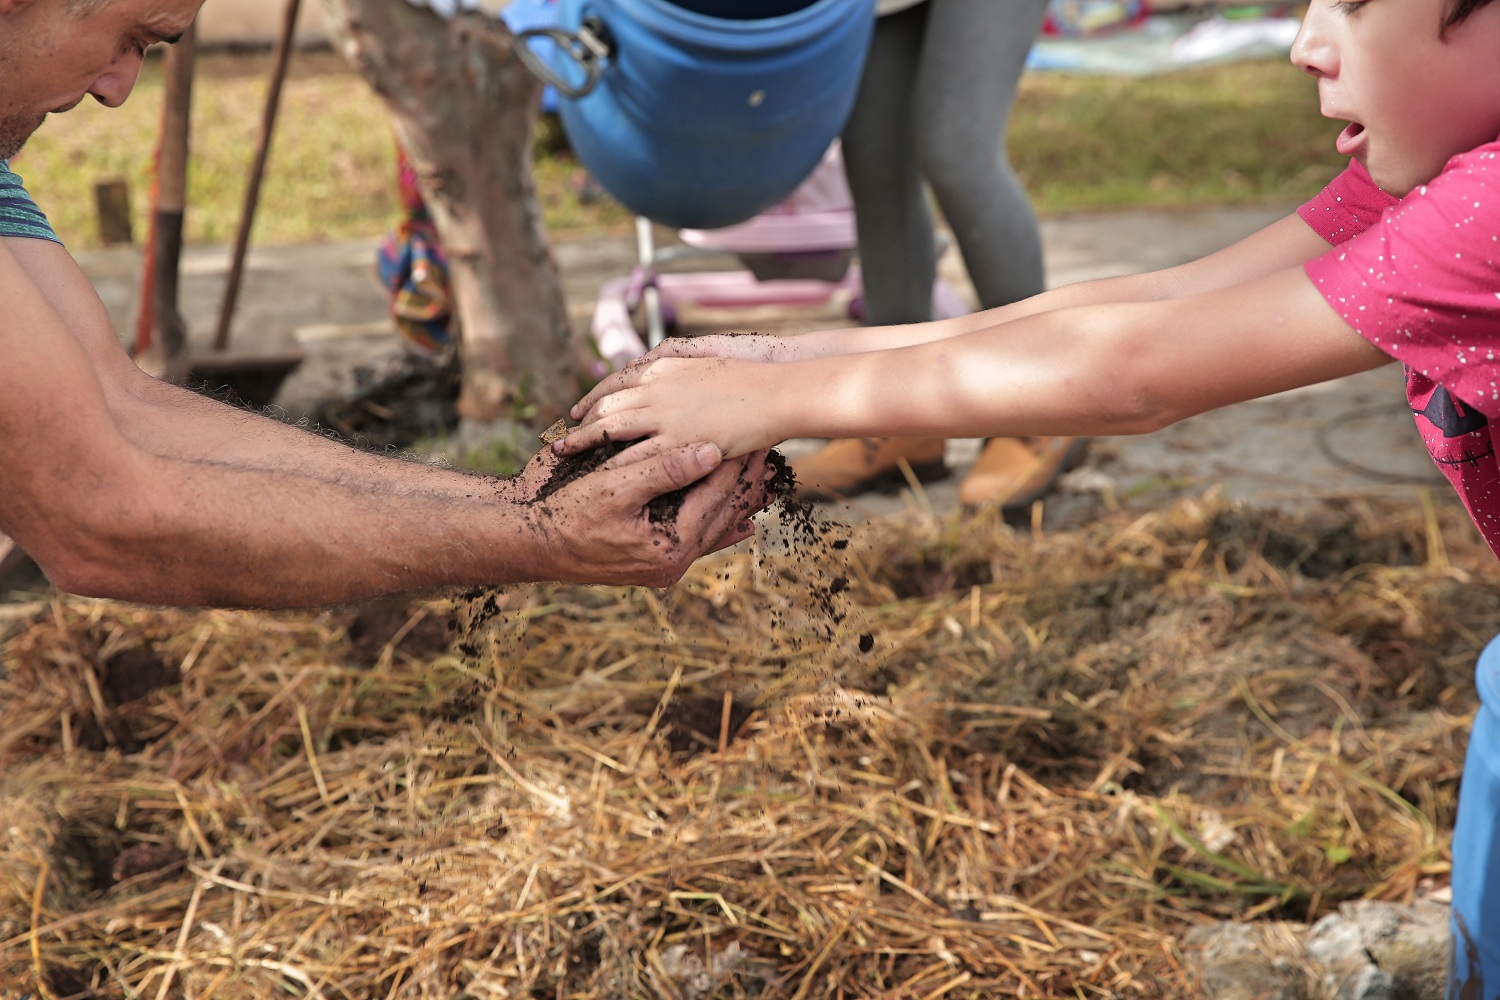 A close-up of a white child giving a handful of dirt to an adult. The picture shows only their arms and part of their faces. On the ground, dirt and straw.